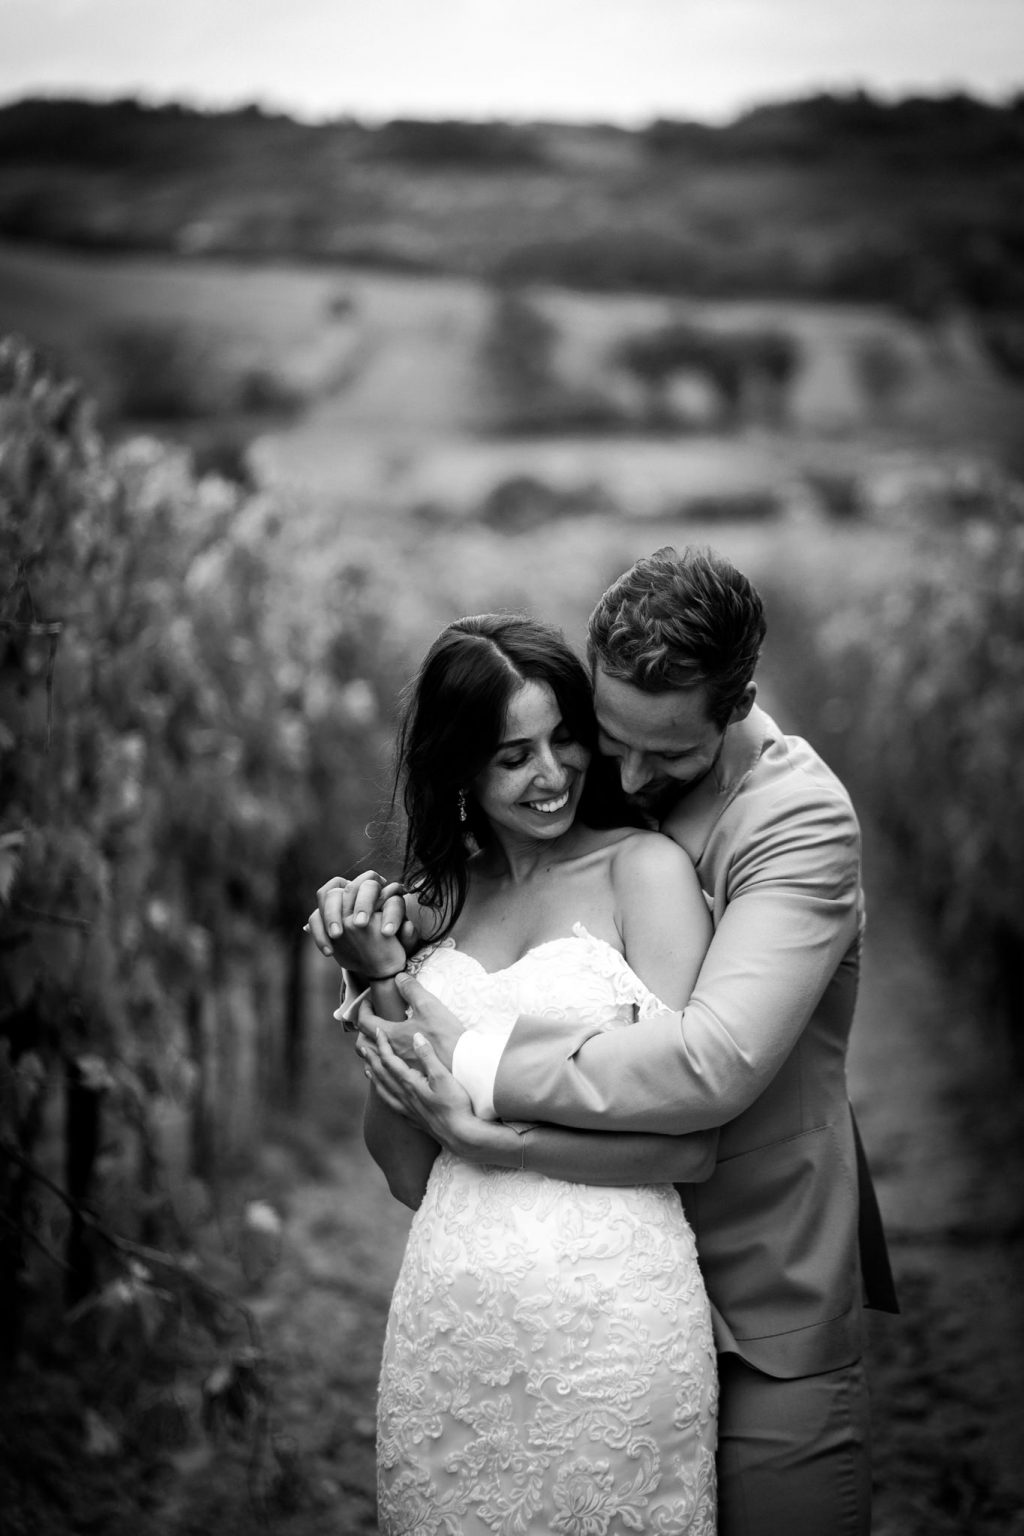 Laura Barbera: Wedding photographer in Montepulciano